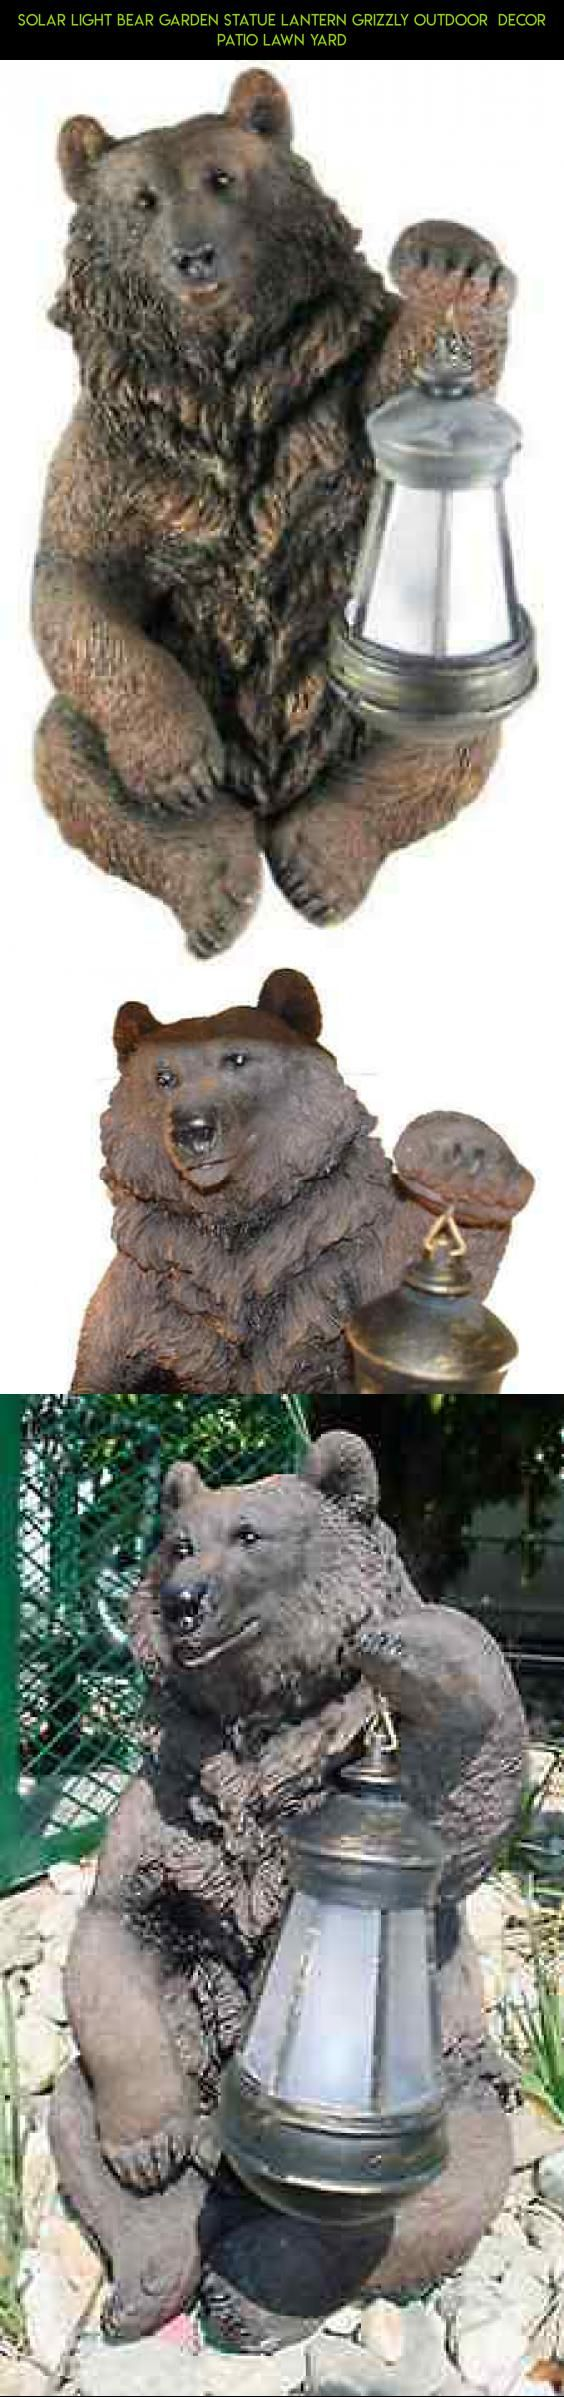 Solar Light Bear Garden Statue Lantern Grizzly Outdoor Decor Patio Lawn  Yard #drone #technology